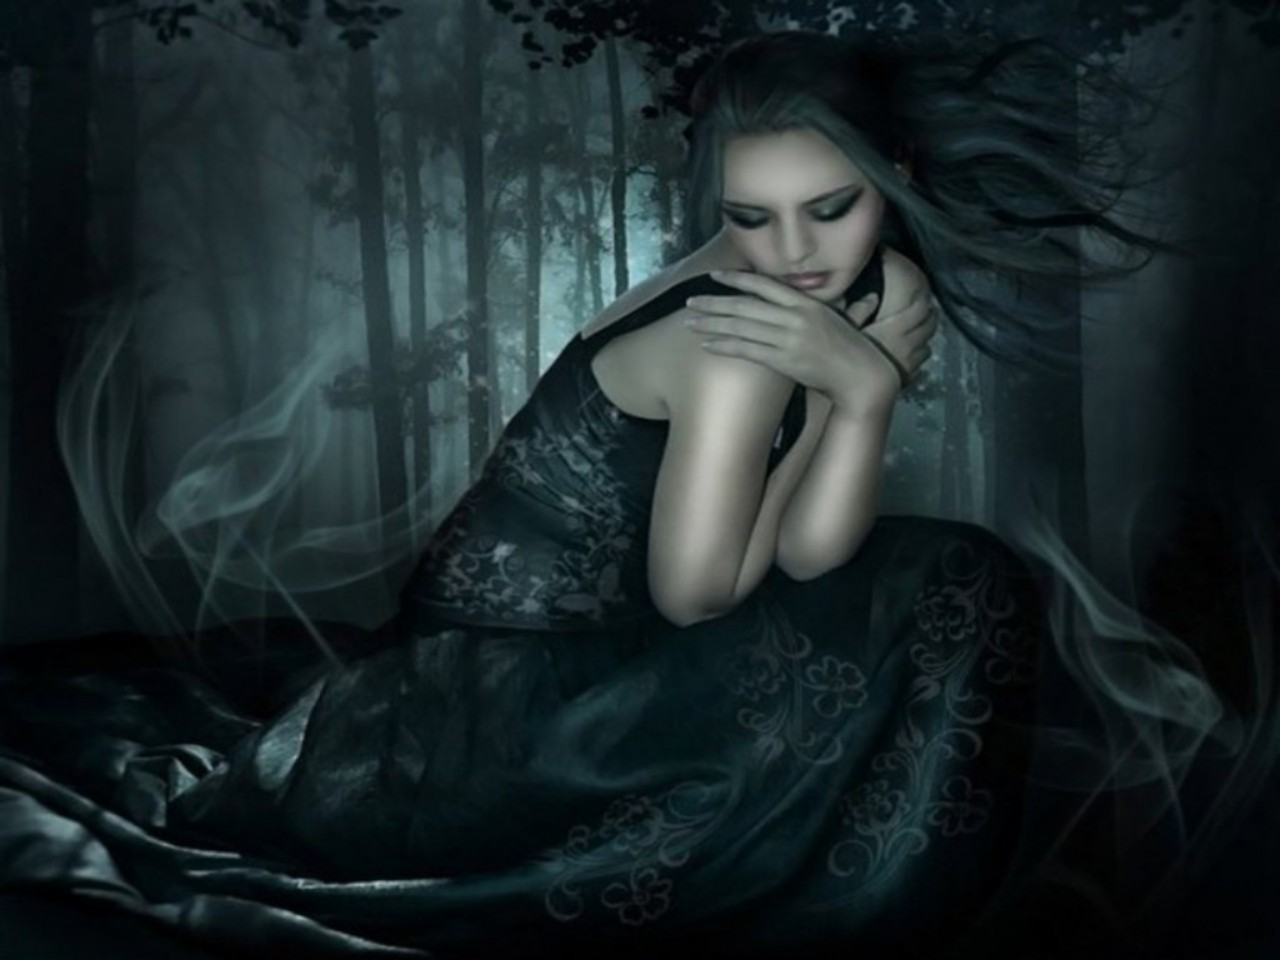 Gothic Dark Wallpapers   Download Dark Gothic Backgrounds 1280x960